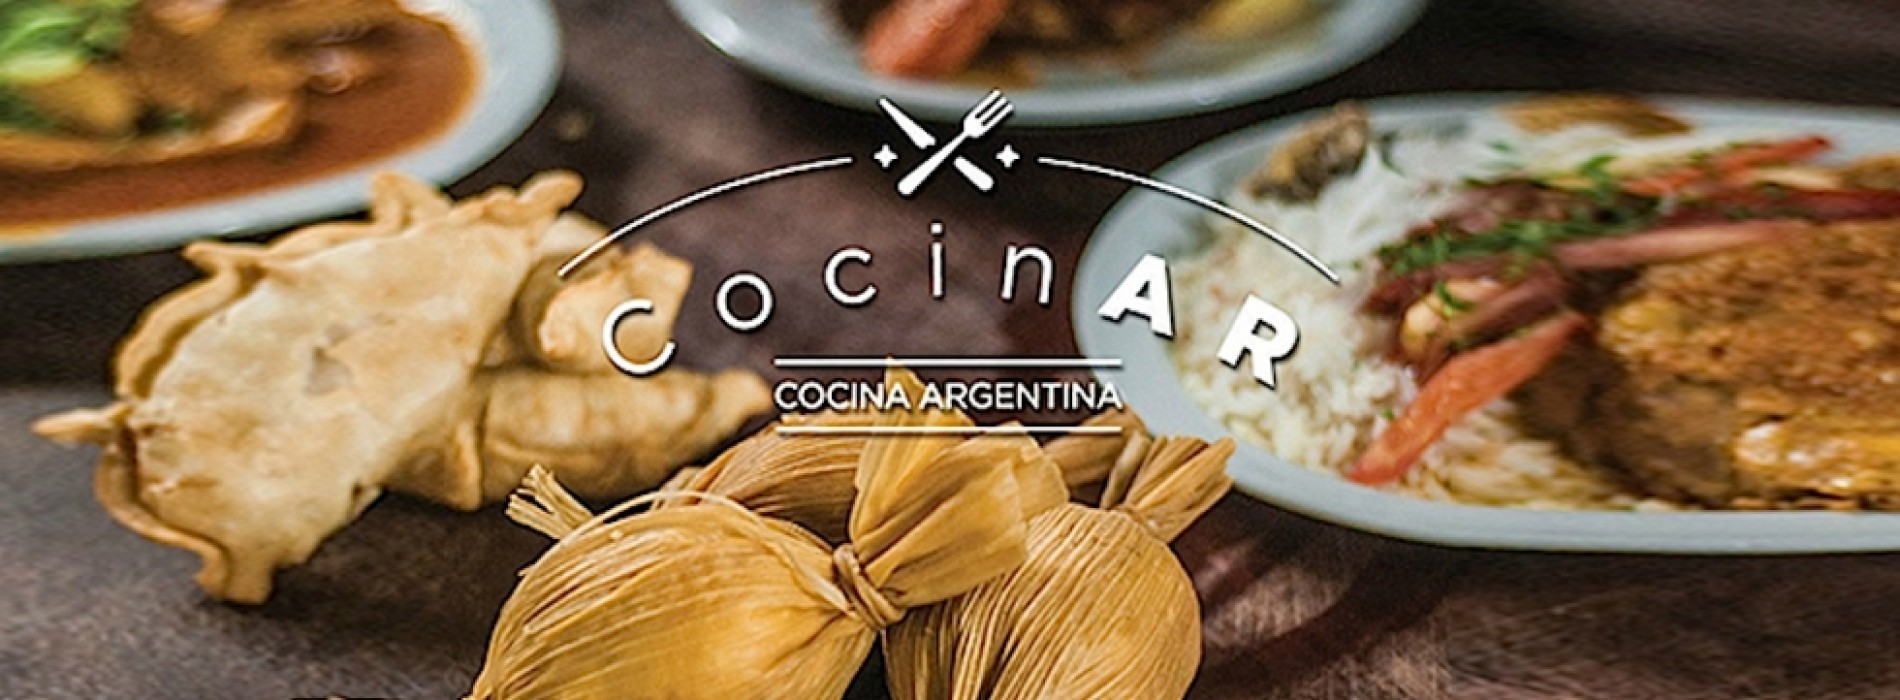 The CocinAR plan won the Excelencias Gourmet Award